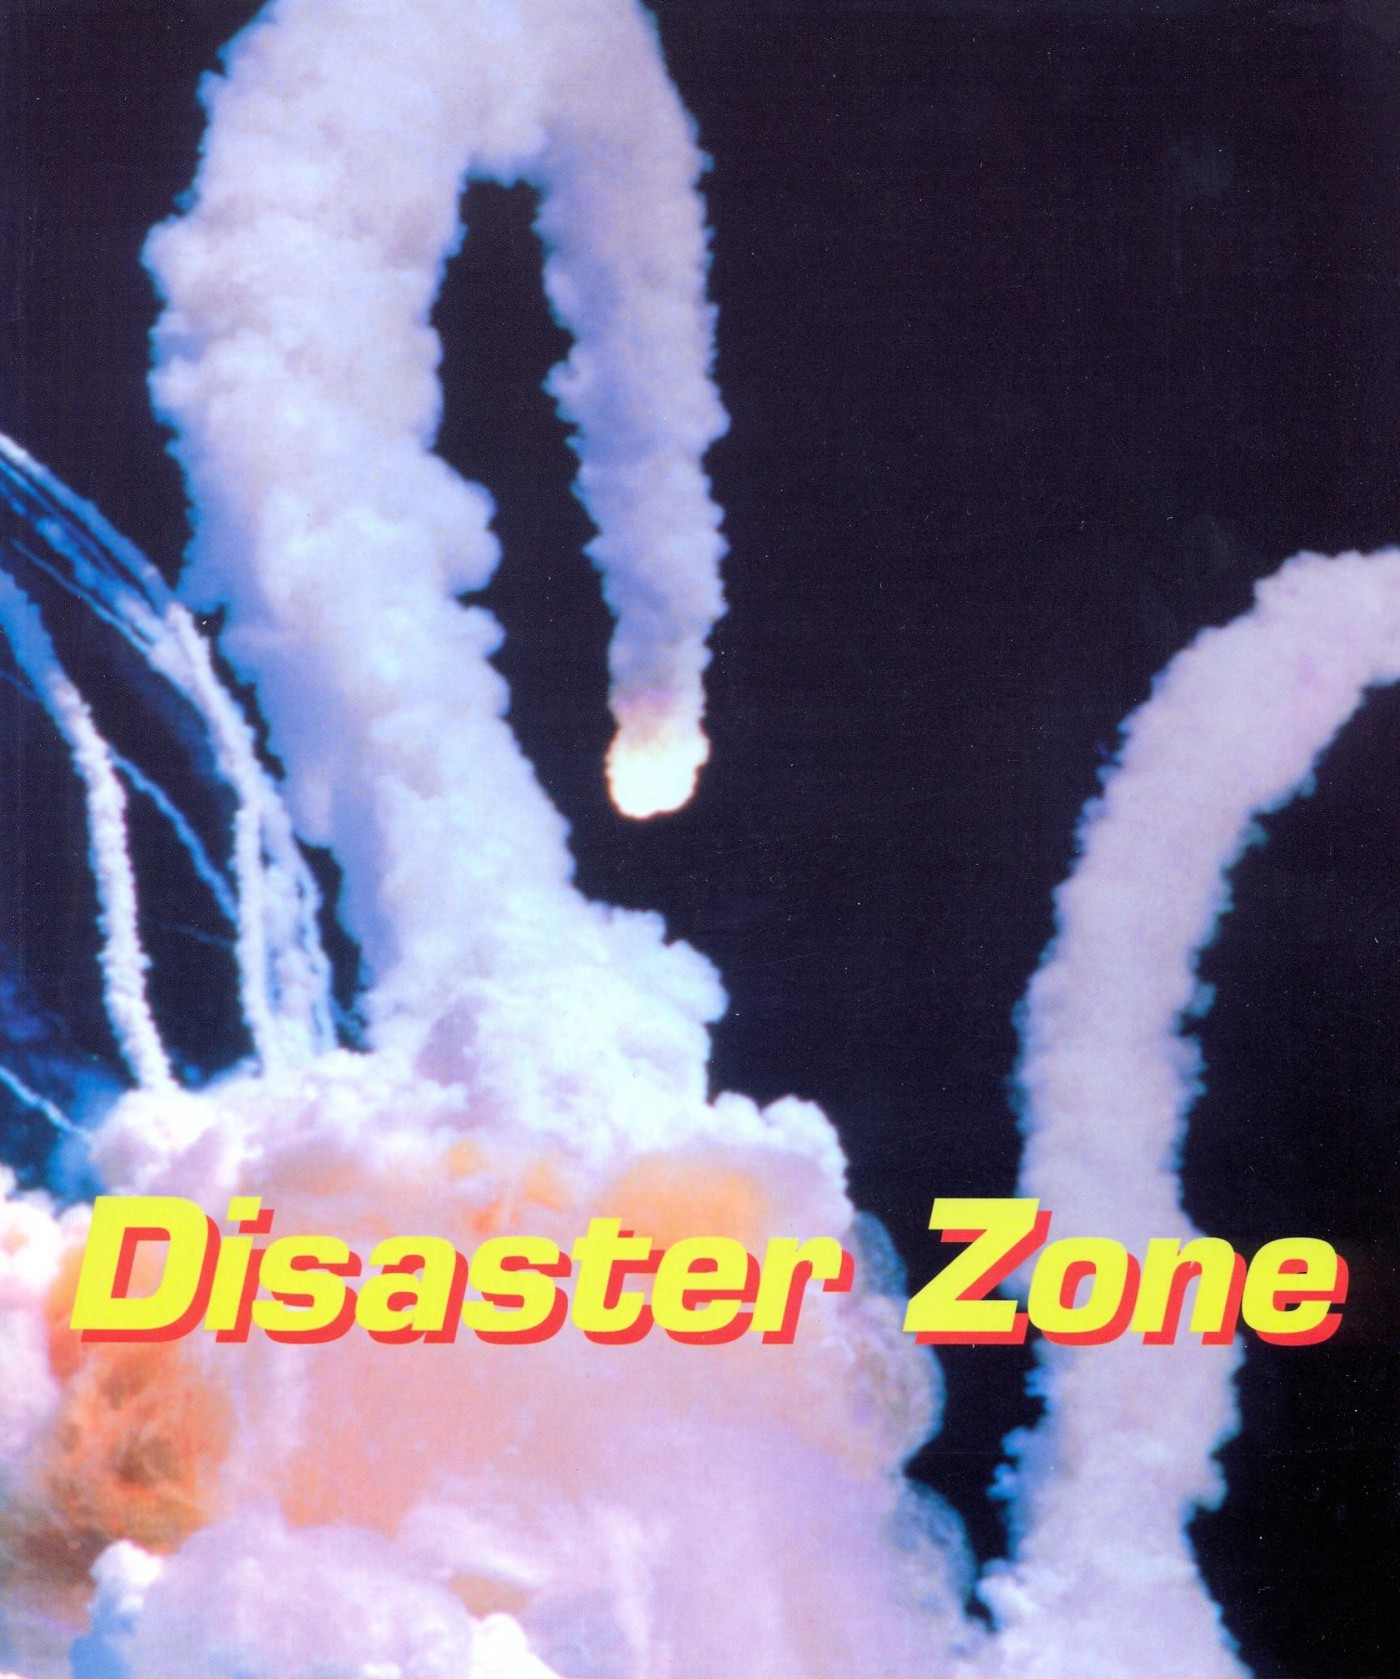 Disaster Zone - Christoph Draeger